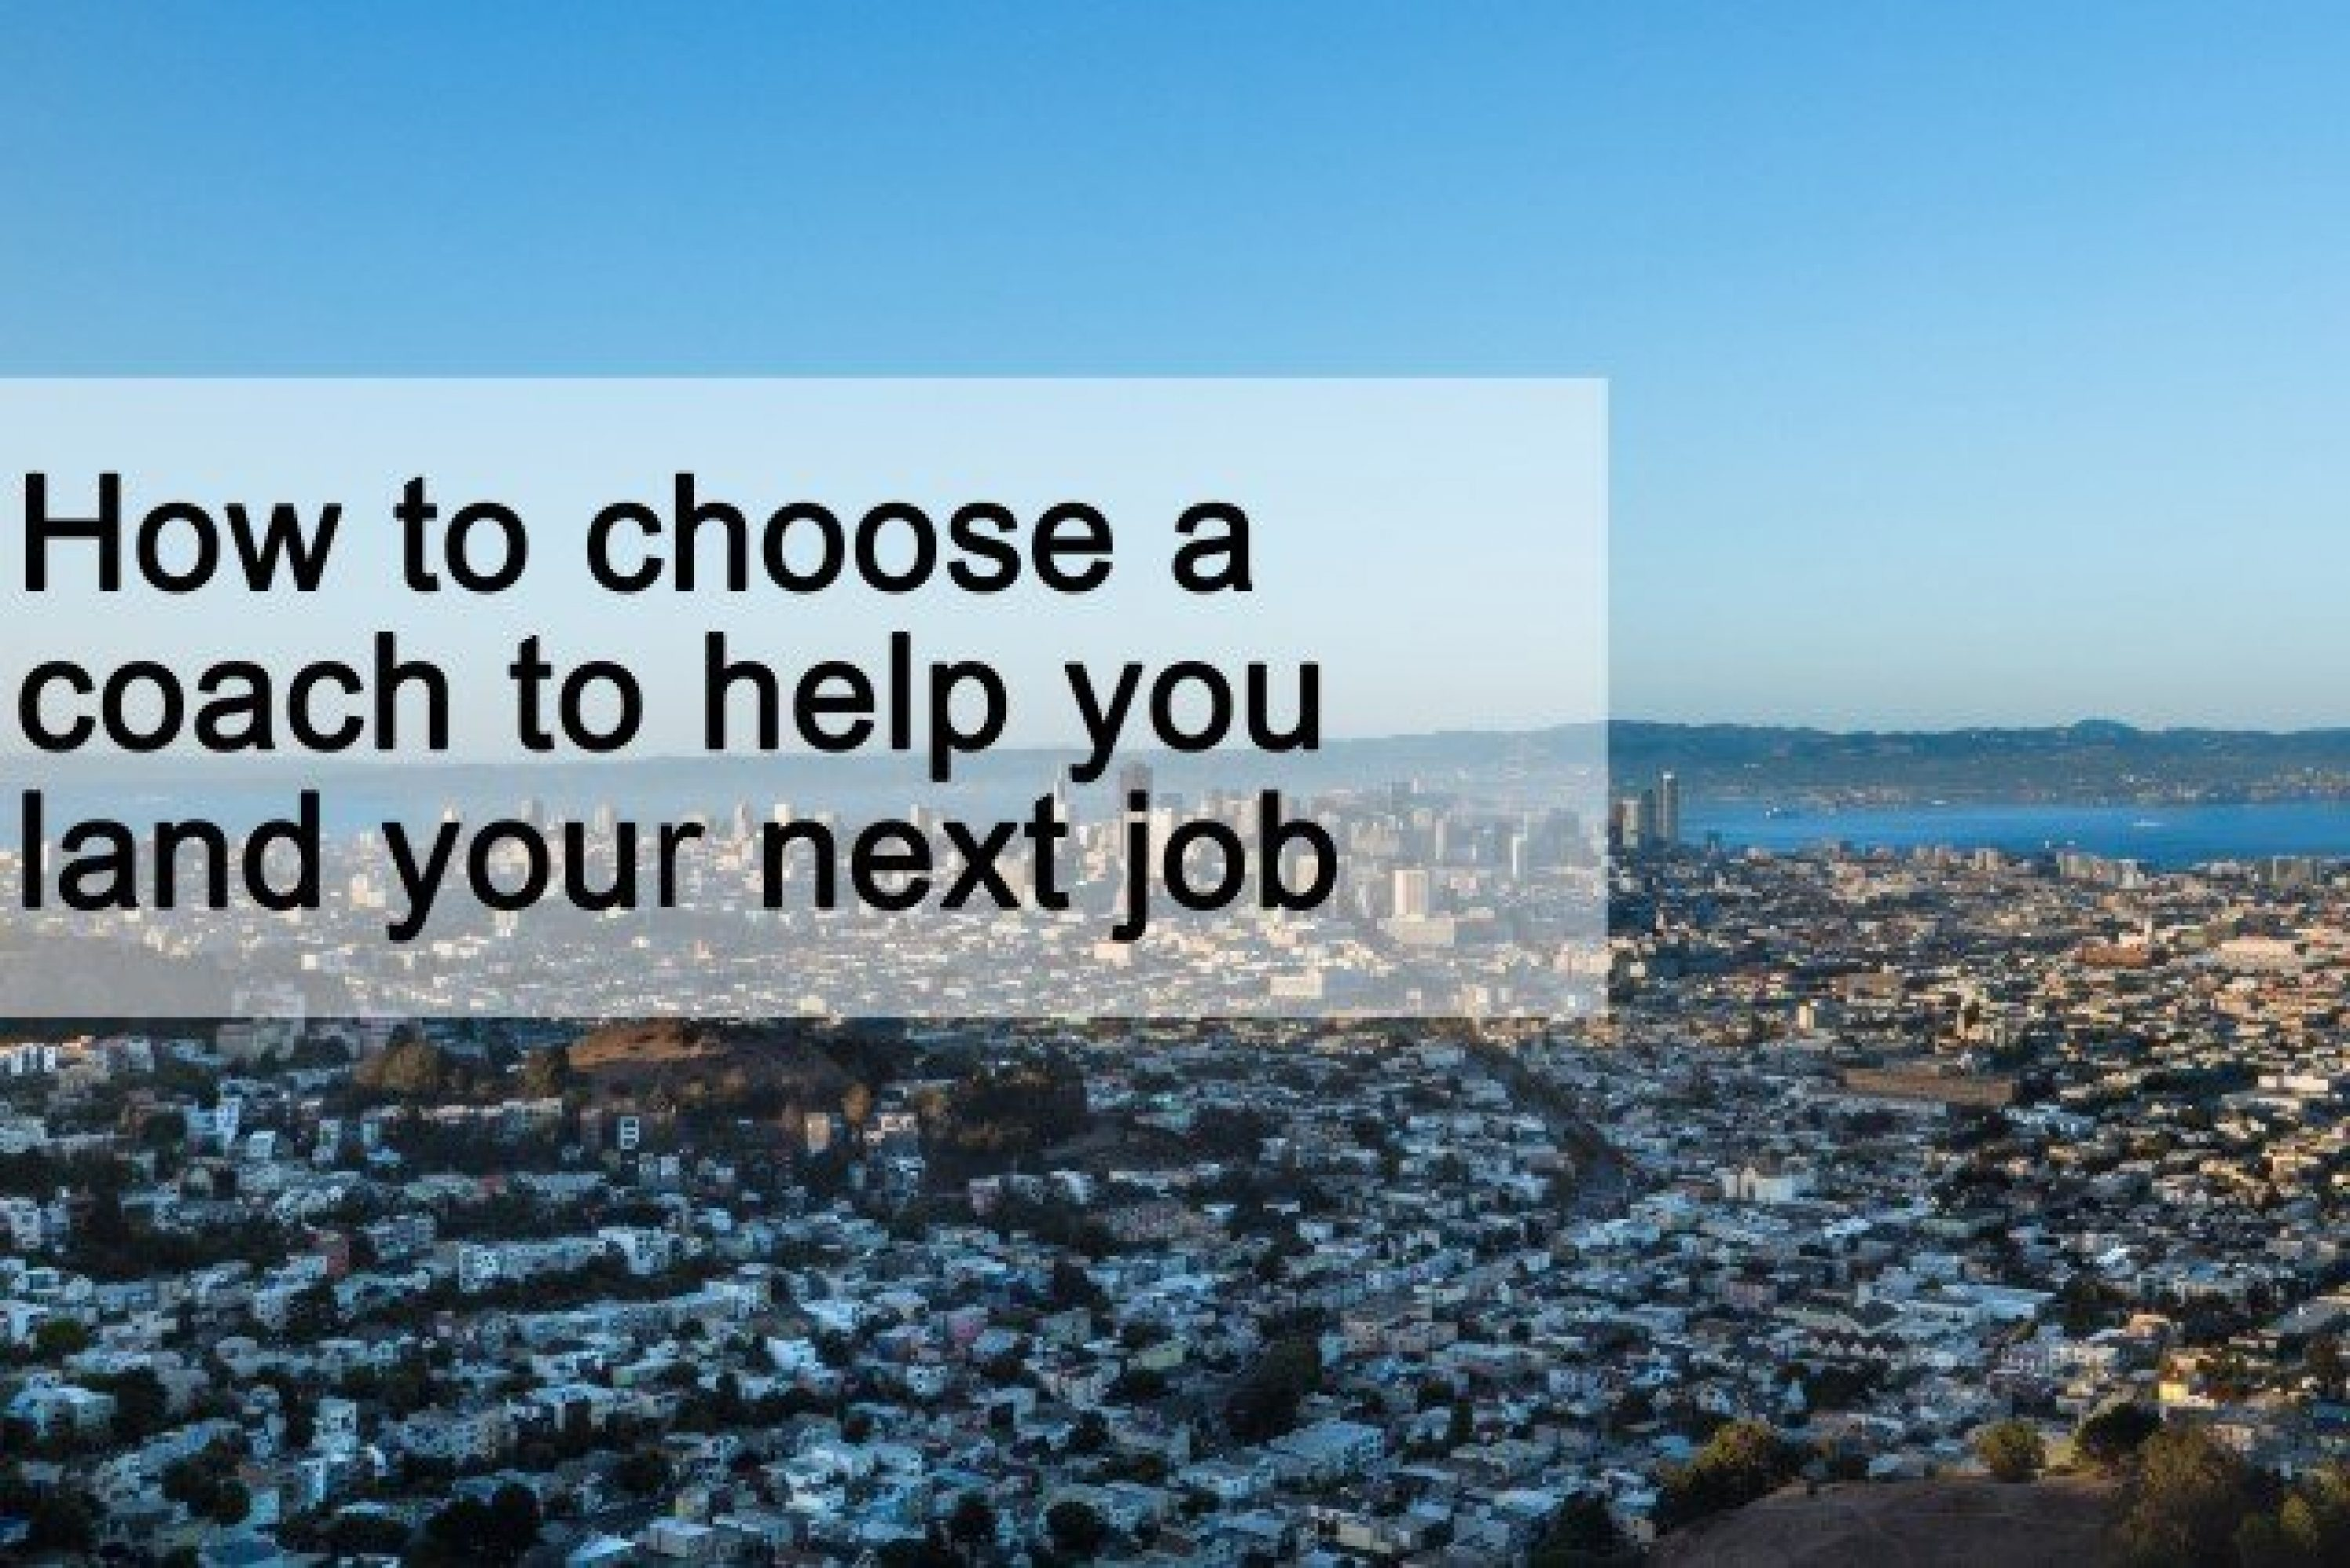 How to choose a coach to help you land your next job